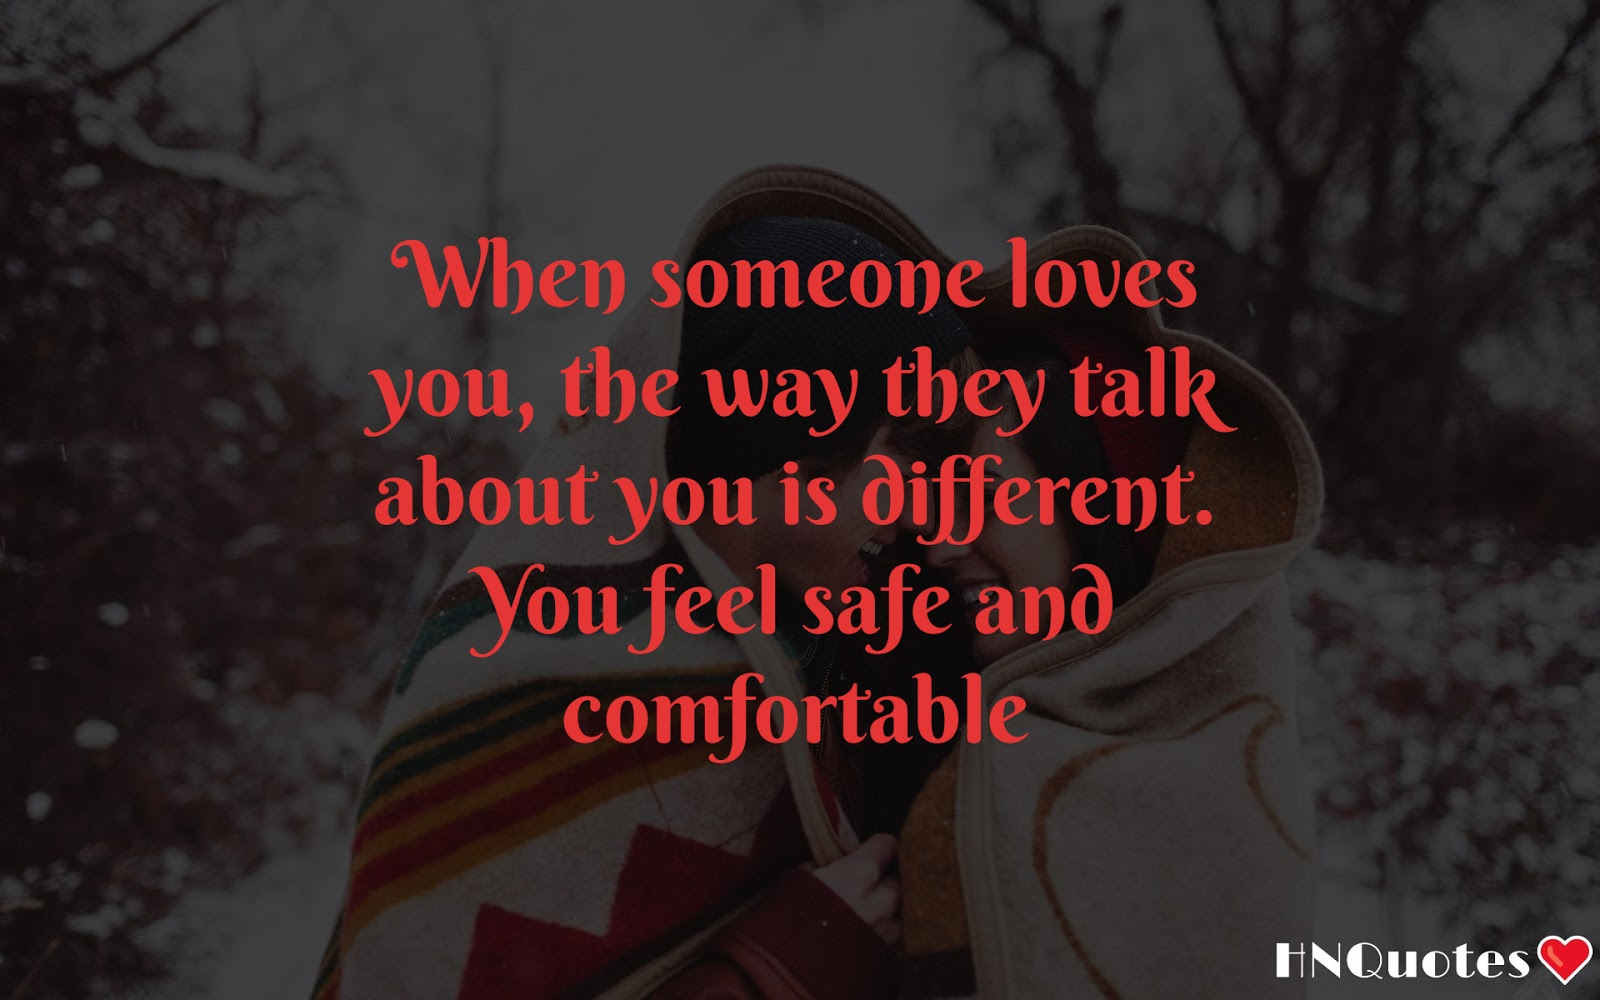 Romantic-Quotes-about-Love-Forever-I-Love-You-66-[HNQuotes]